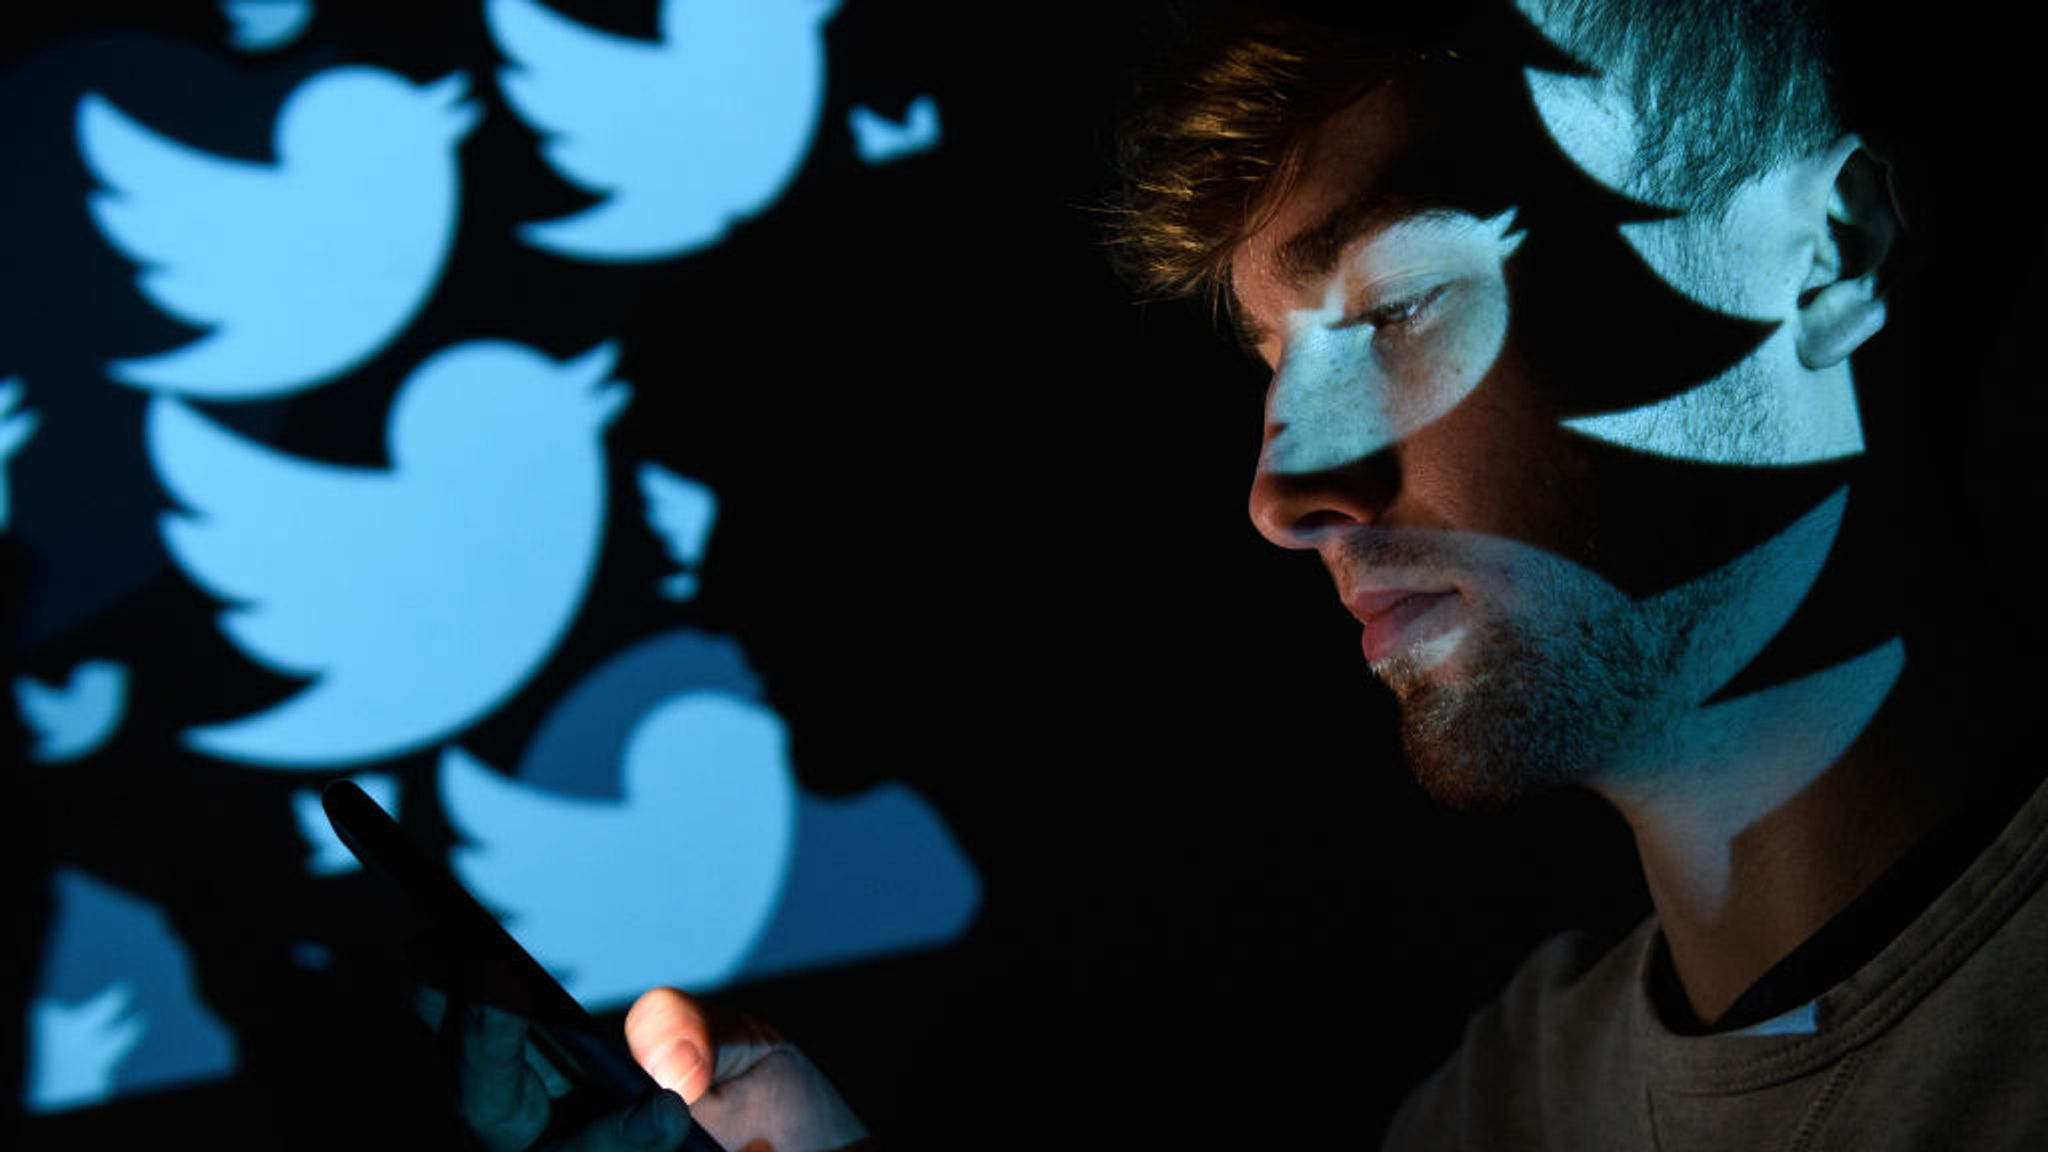 Twitter Web Gets Tools To Remove Unwanted Followers